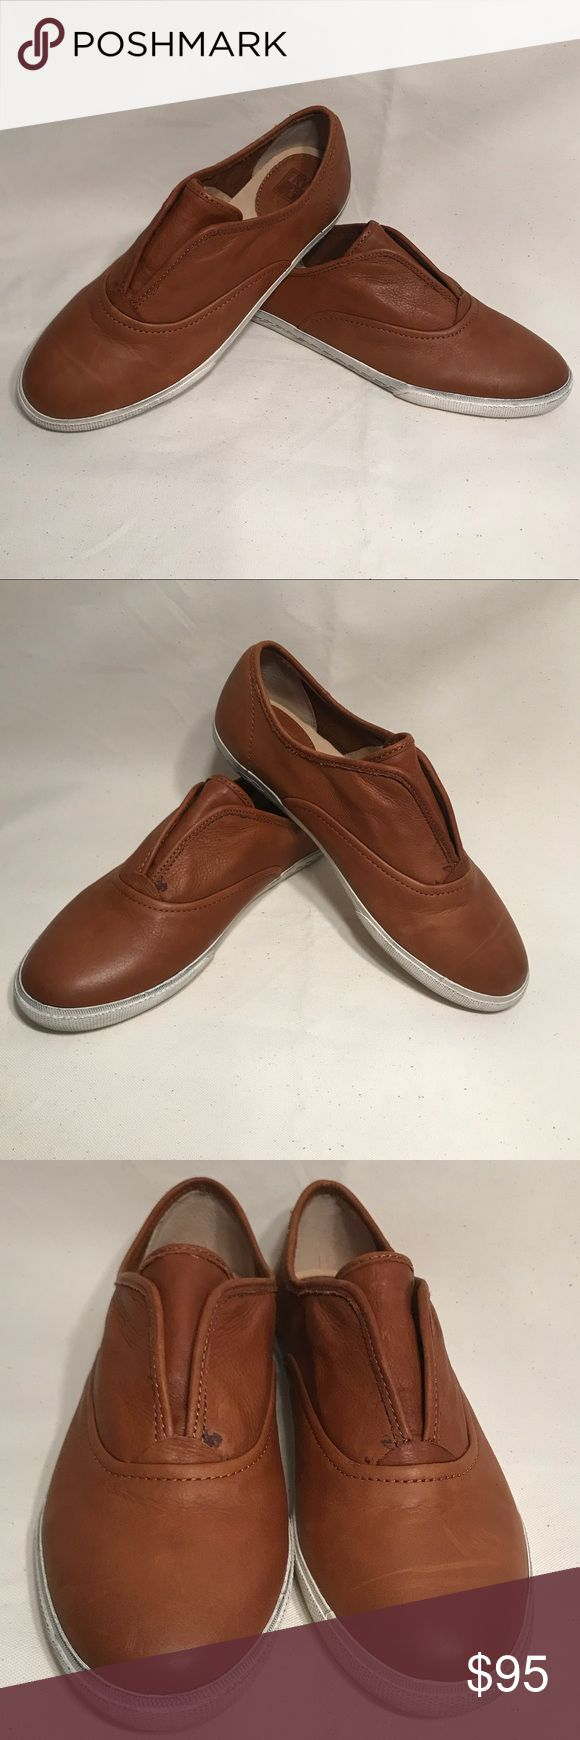 NIB FRYE  Mindy Slip On Shoes Size 9M New in the box FRYE slip on shoes. These shoes are cute and casual. The color is Whiskey & the style is Mindy. Please note that the rubber sole of the shoe is supposed to look dark and off color. The size is 9M. Frye Shoes Flats & Loafers